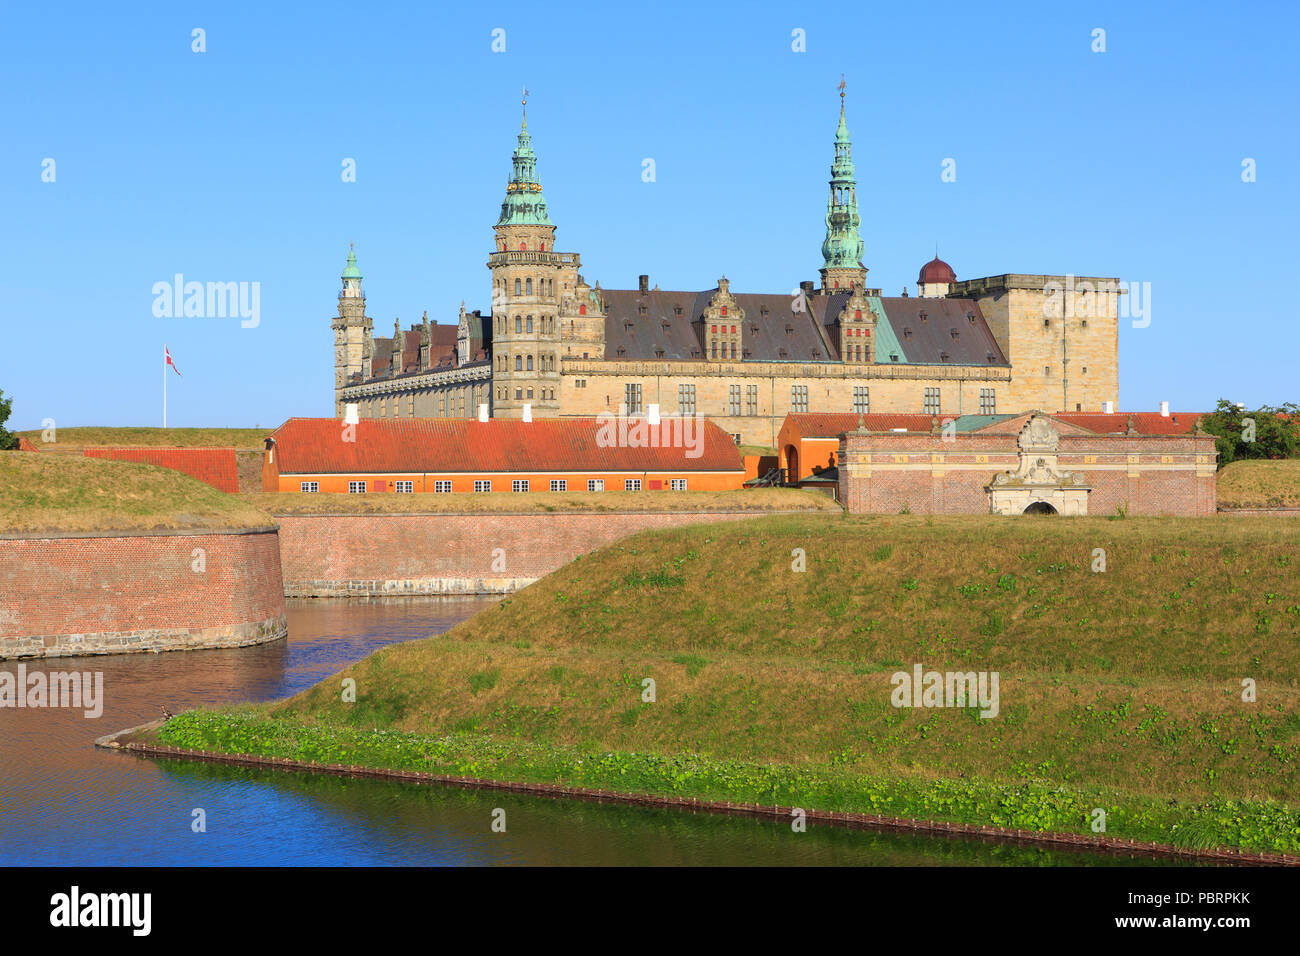 The main entrance of Kronborg Castle (a UNESCO World Heritage Site since 2000) in Helsingor, Denmark - Stock Image